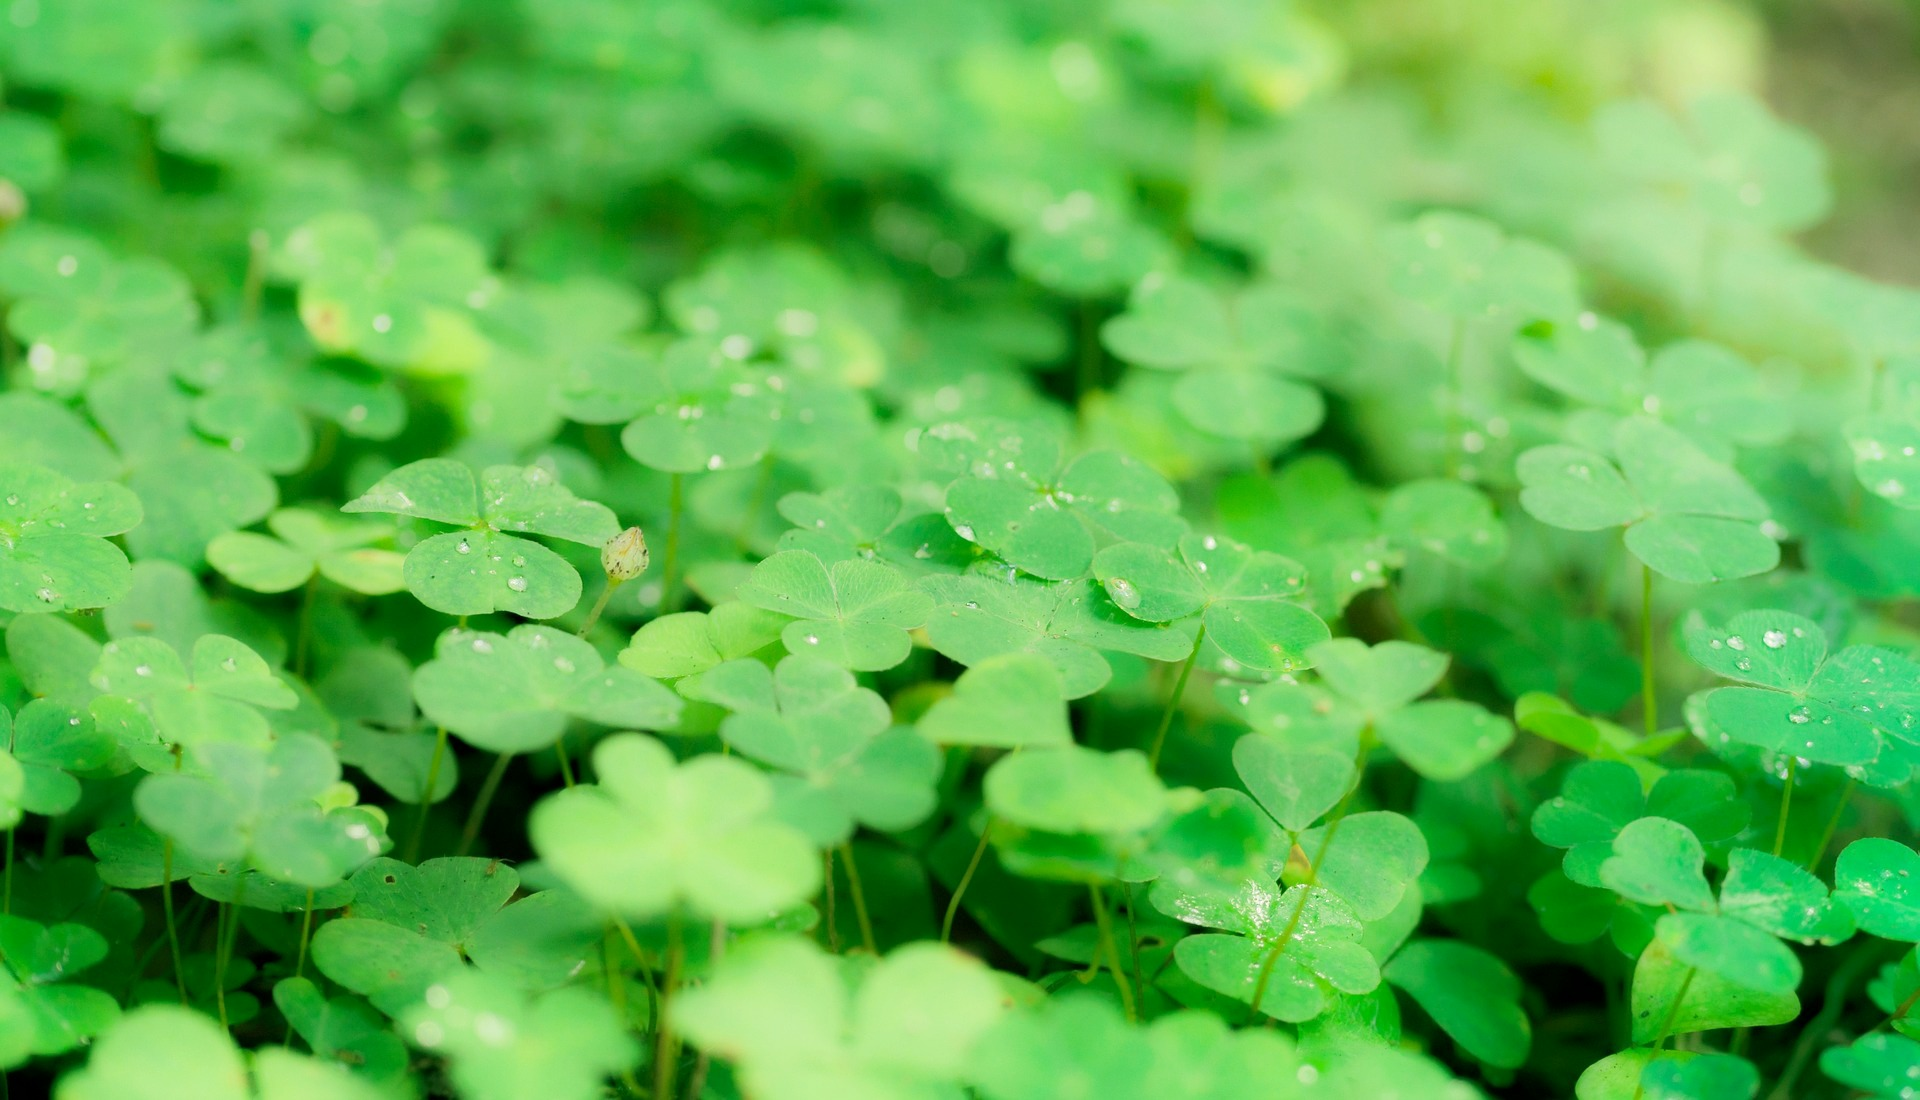 Luck Or Dna Genetics Of The Four Leaf Clover And The Search For